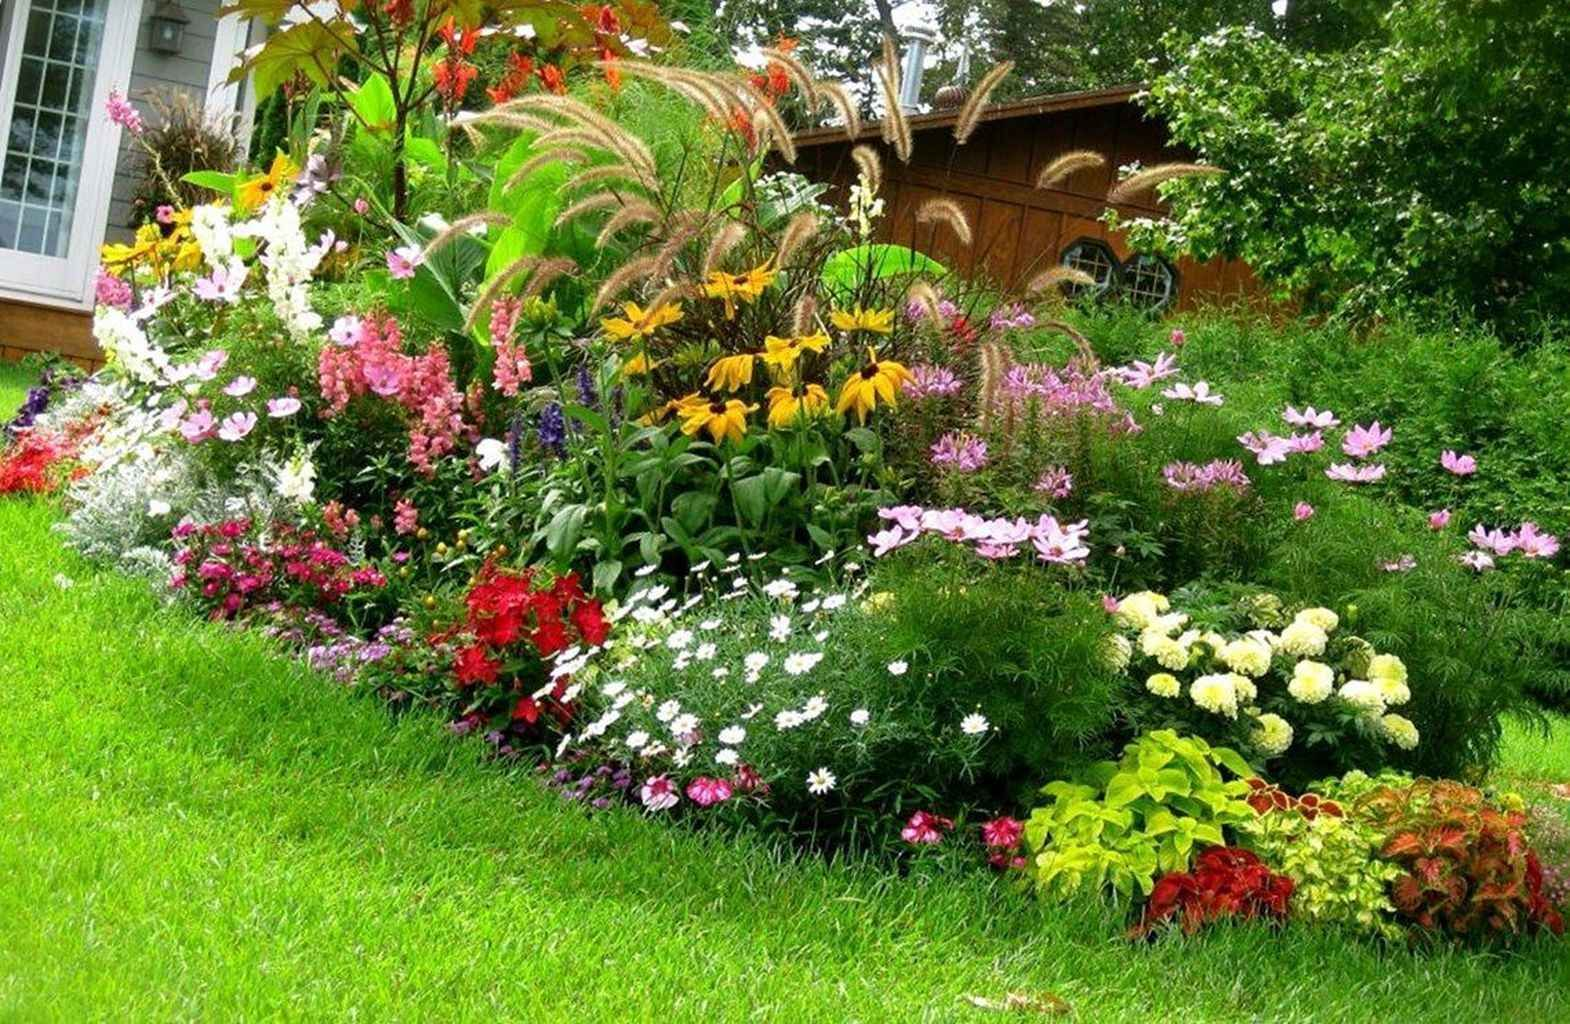 90 beautiful front yard flowers garden landscaping ideas on beautiful backyard garden design ideas and remodel create your extraordinary garden id=79078